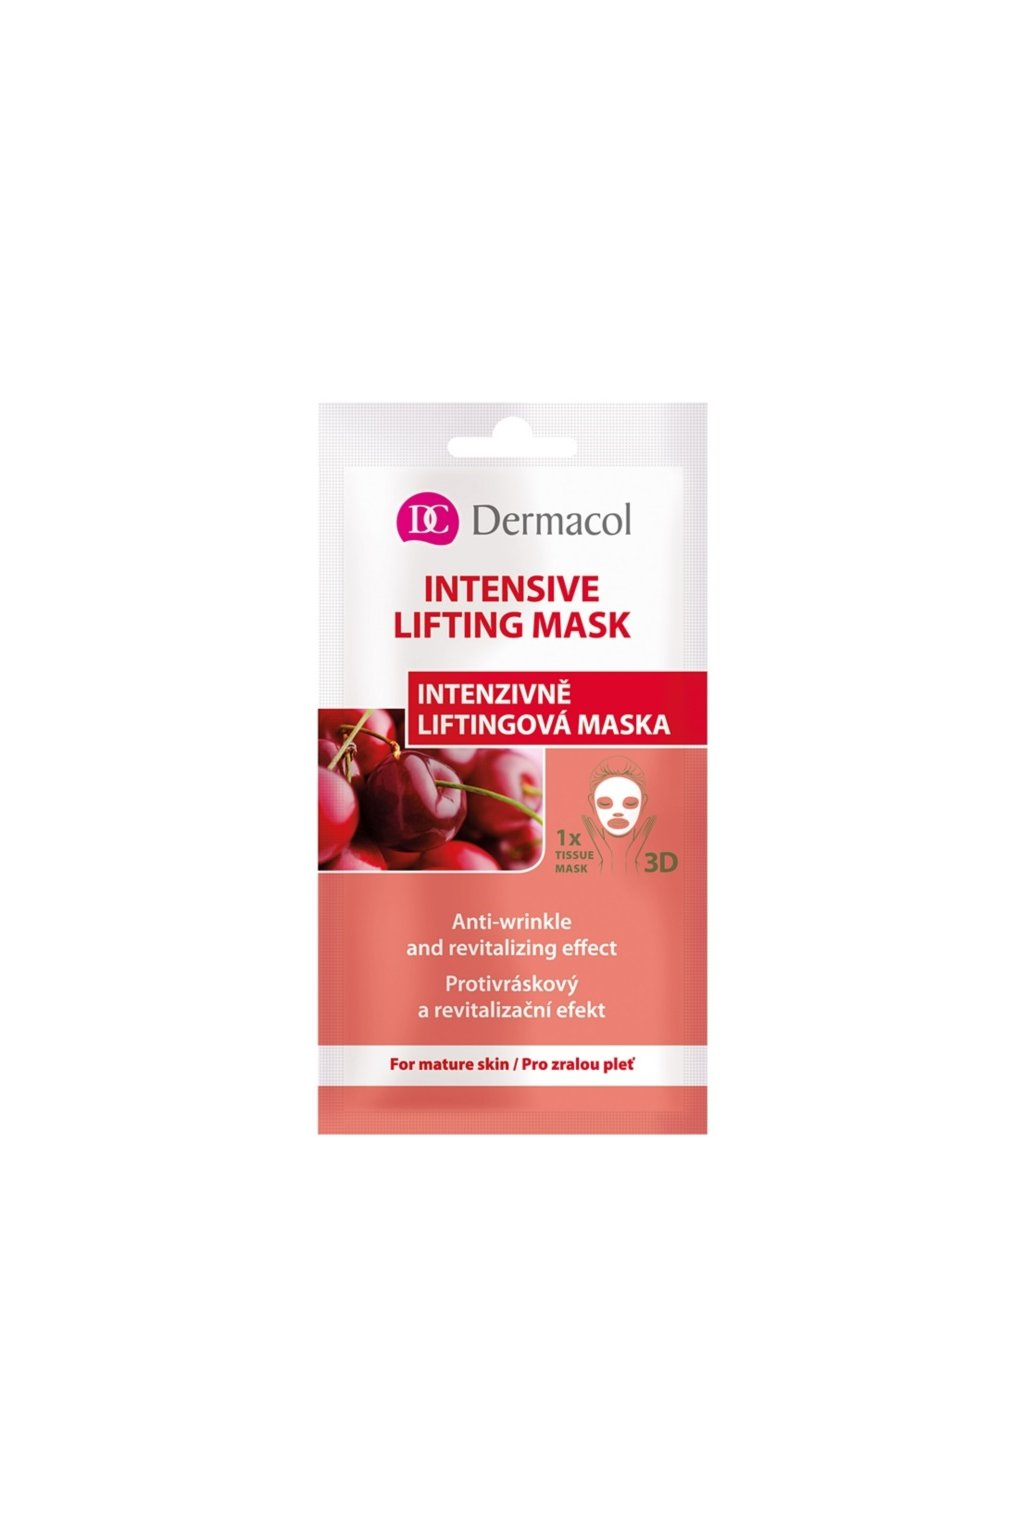 dermacol intensive lifting mask textilni 3d liftingova maska 15